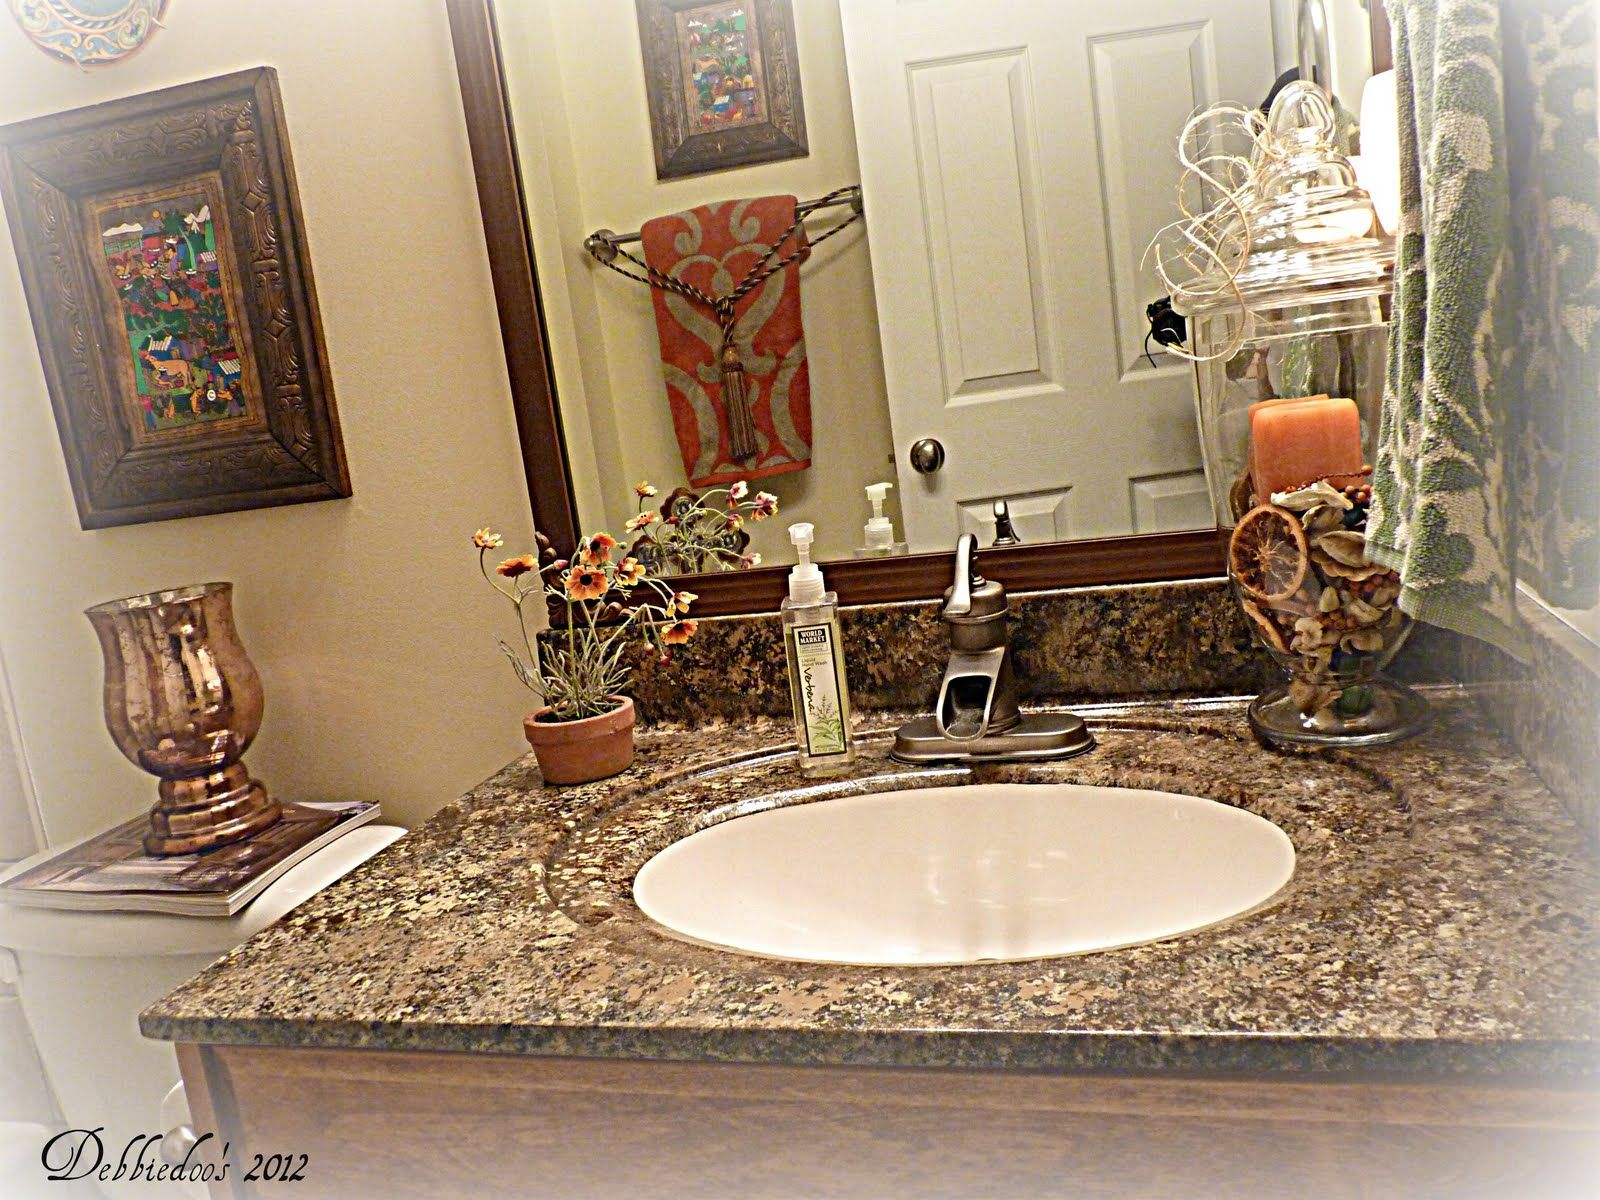 gianim paint | Giani granite paint for counter tops FINAL reveal!